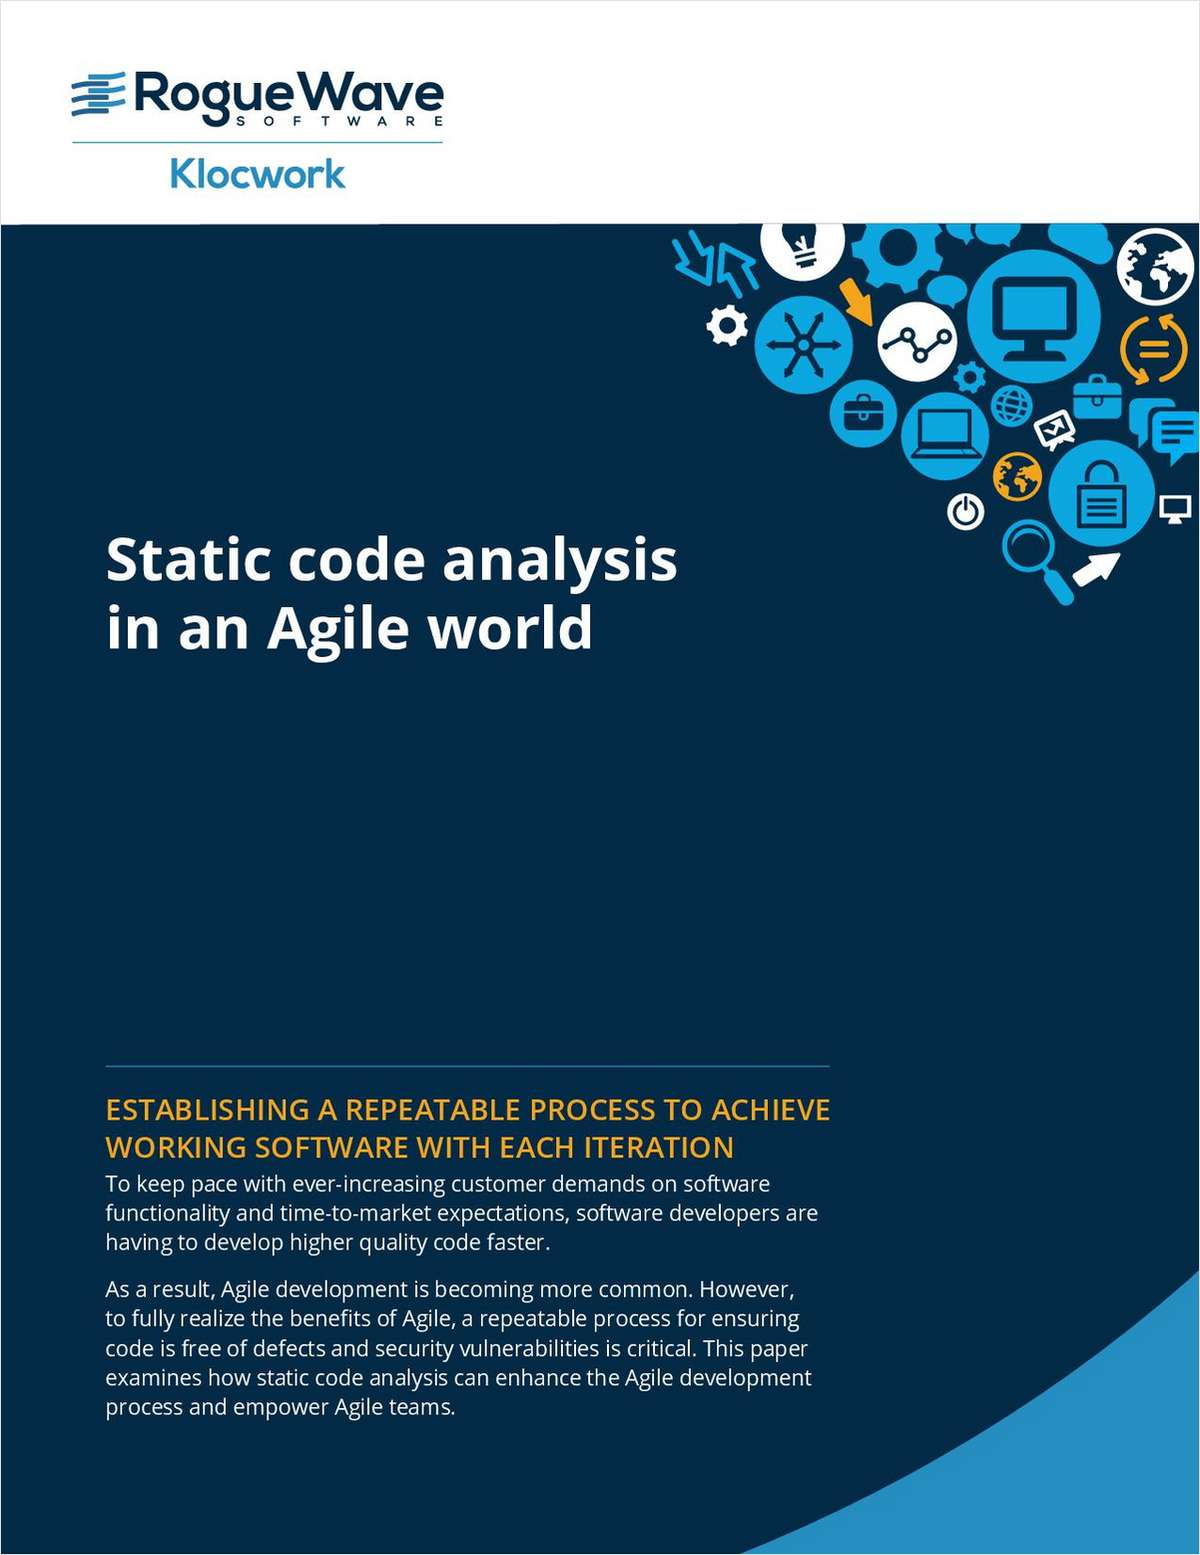 Static Code Analysis in an Agile World